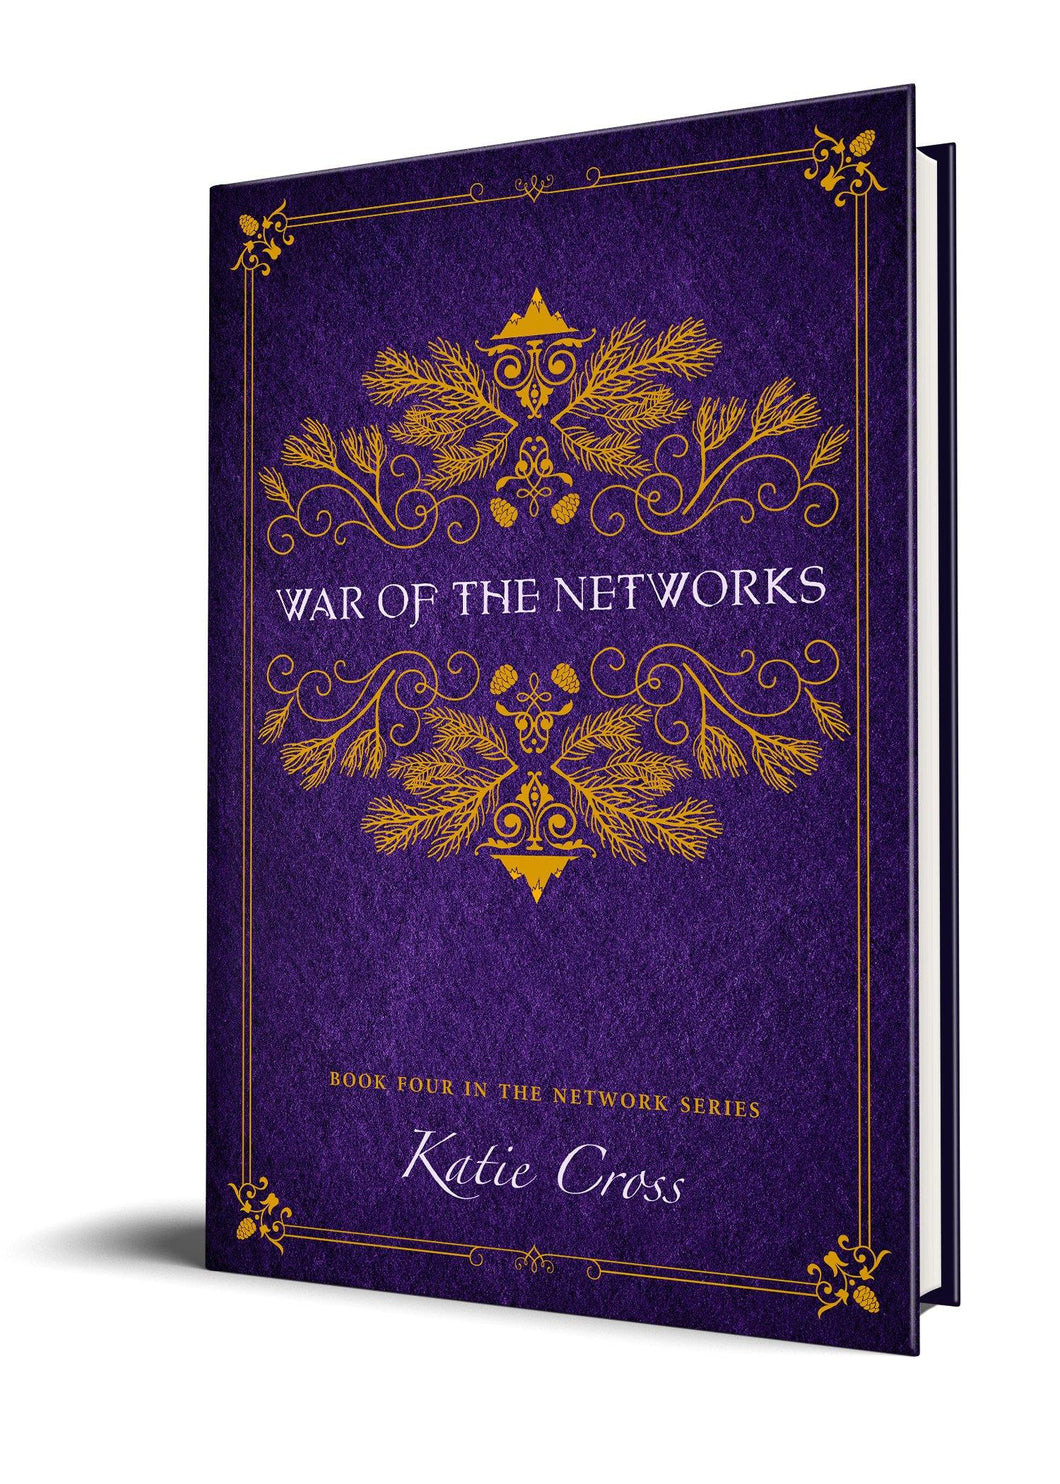 War of the Networks (Paperback Edition) - Katie Cross